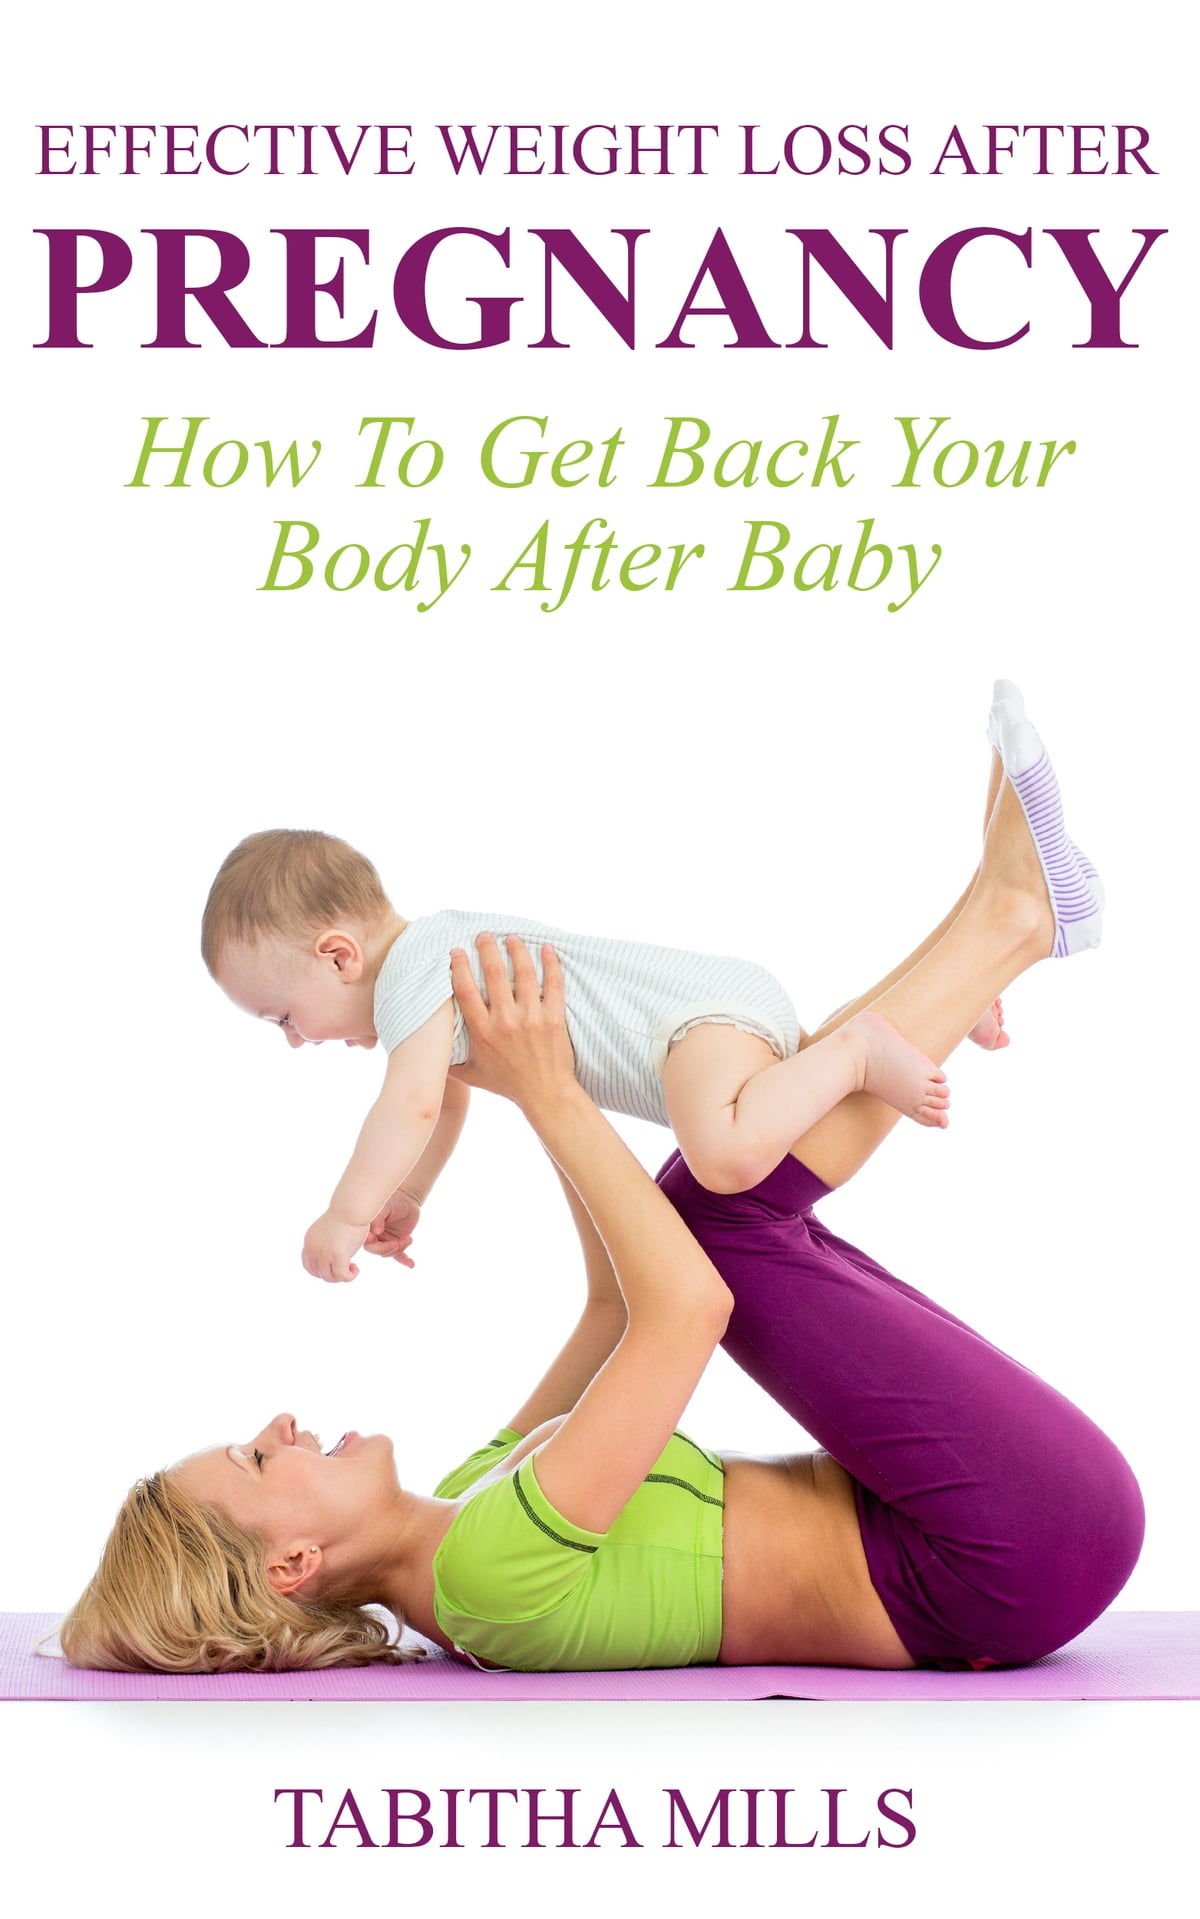 Effective Weight Loss After Pregnancy How To Get Back Your Body Baby Ebook By Tabitha Mills 9781301204977 Rakuten Kobo